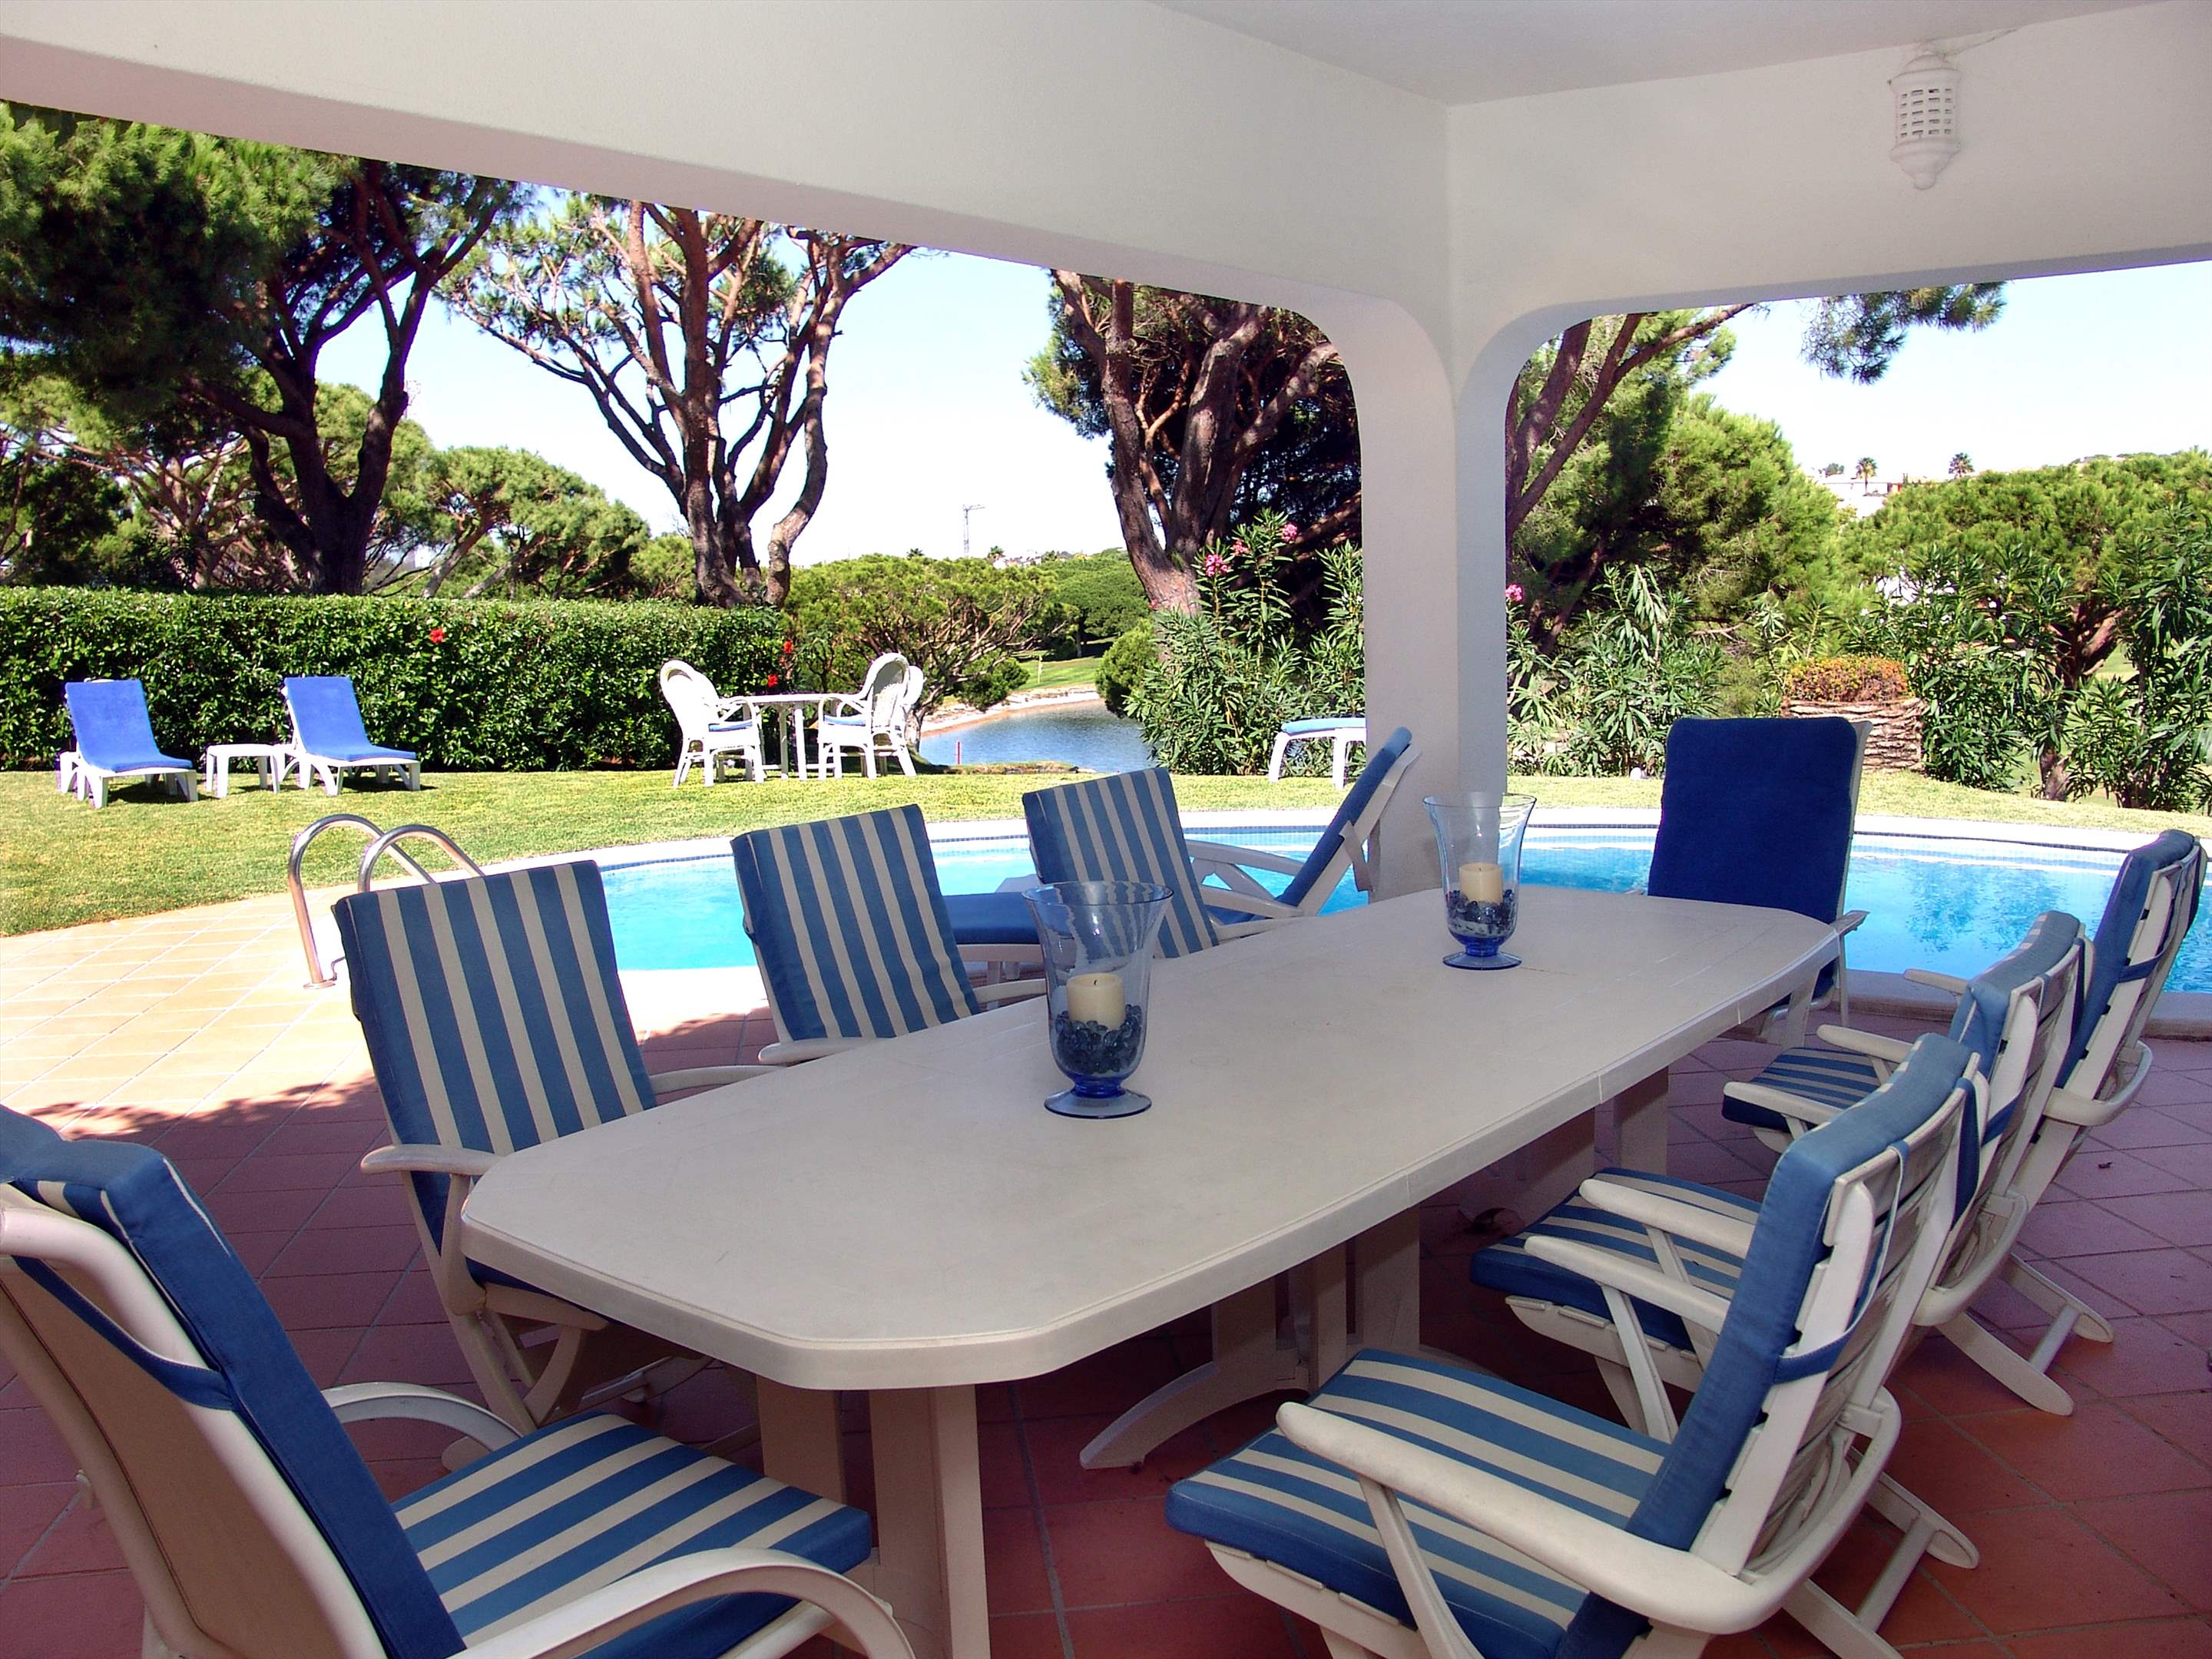 Villa Cascata, 4 Bedroom, 4 bedroom villa in Vale do Lobo, Algarve Photo #3